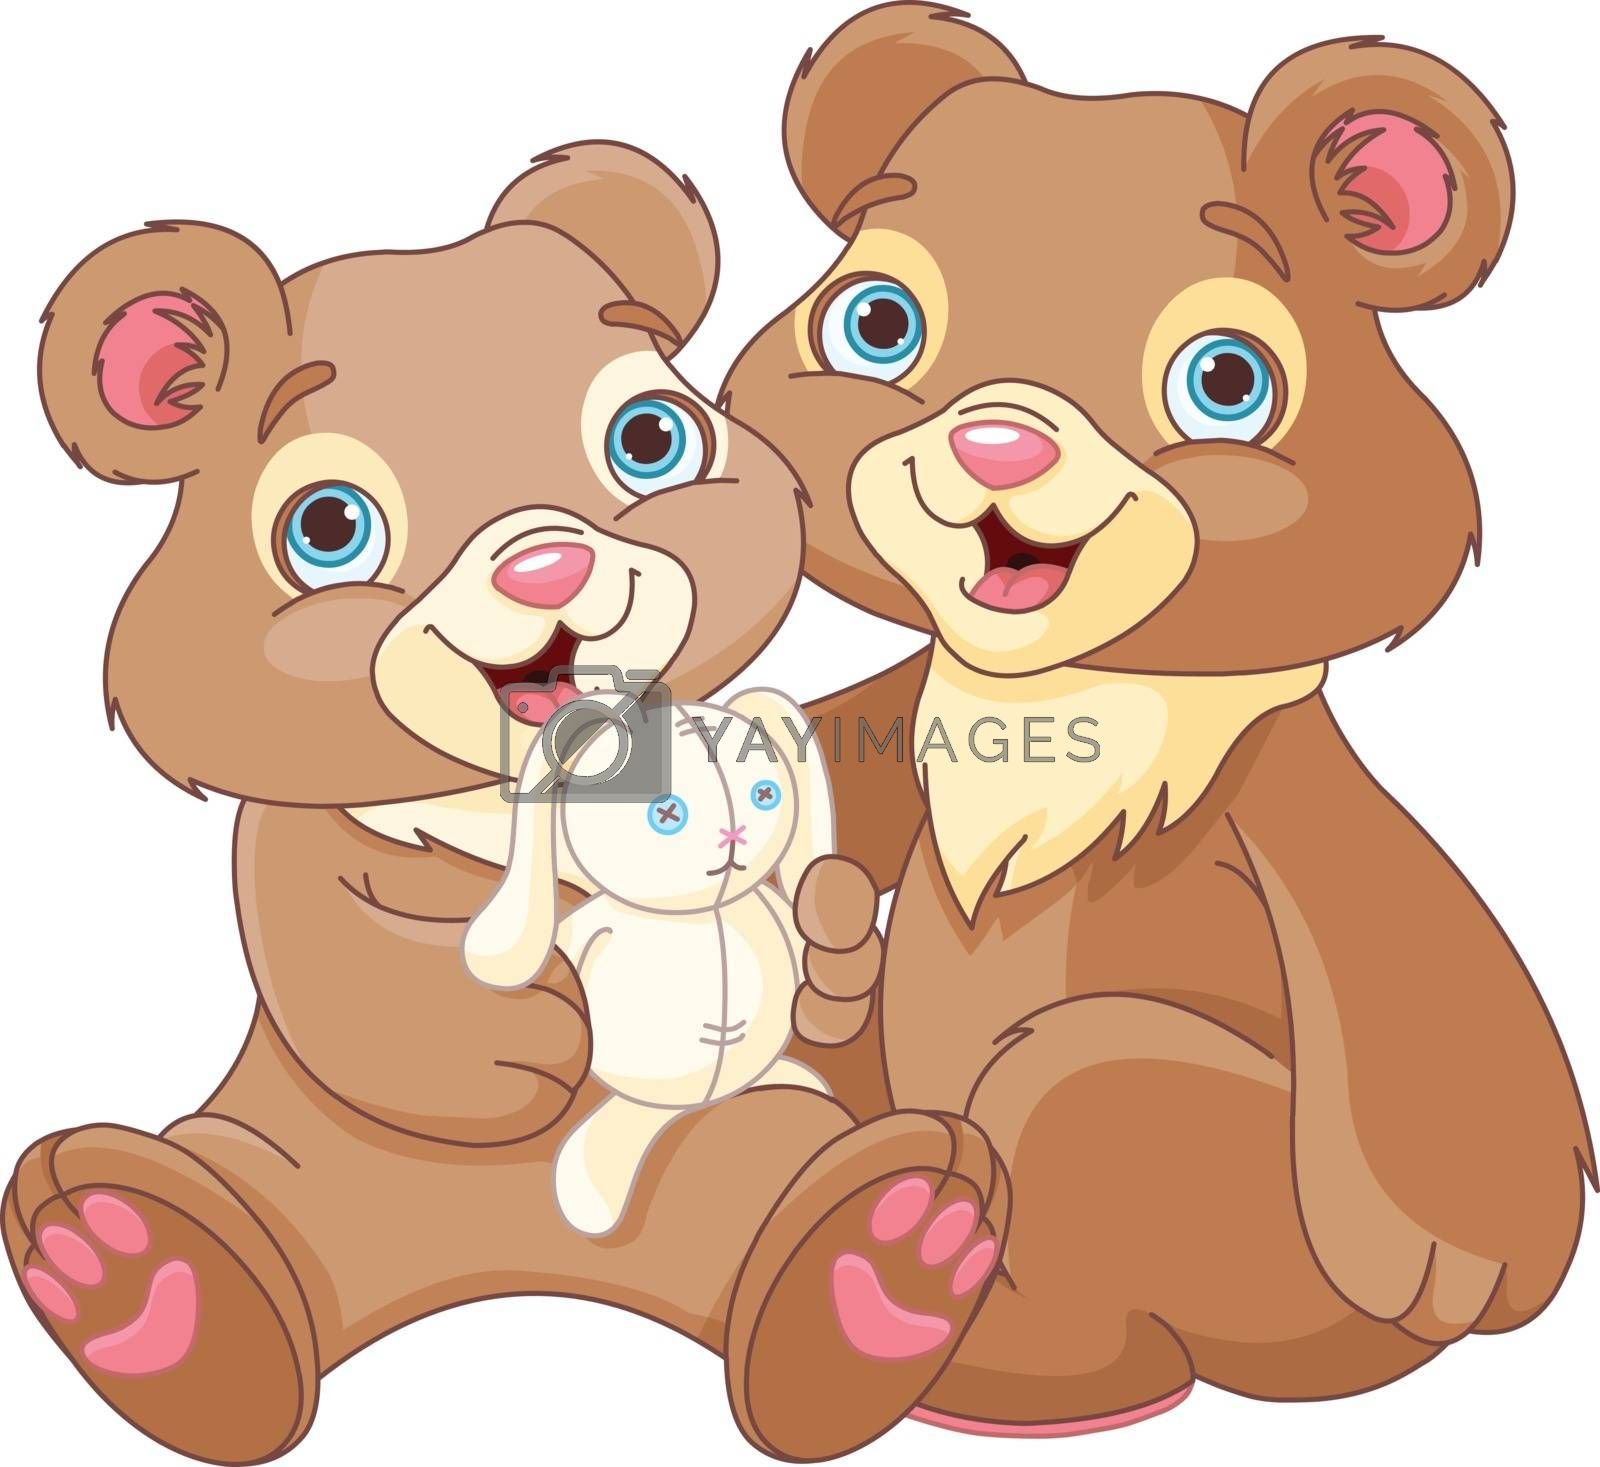 Royalty free image of Bear brothers by Dazdraperma